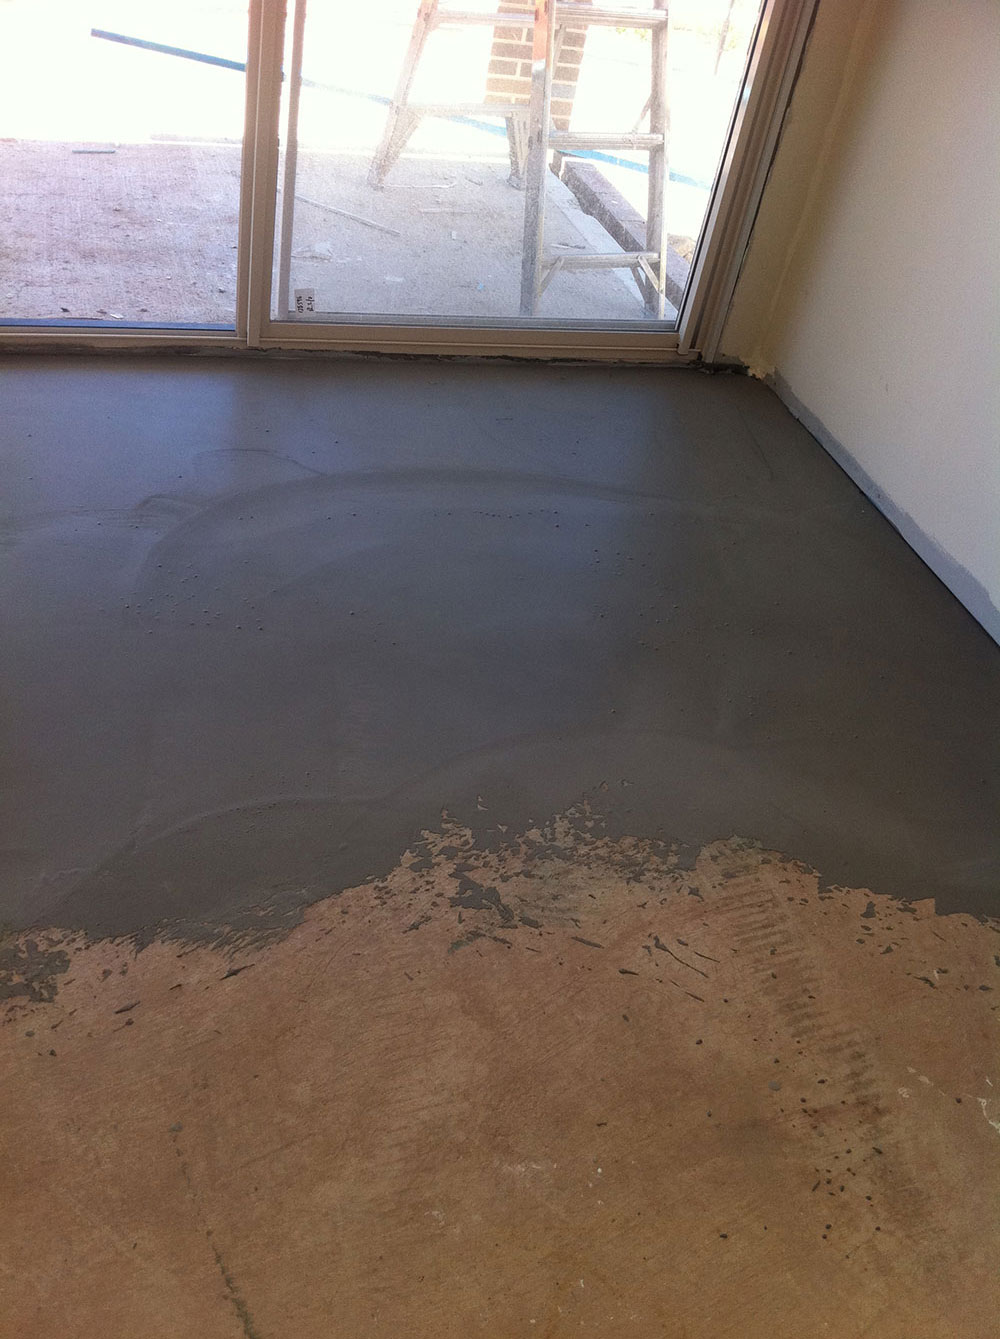 K15 Floor Leveller Applied To Concrete Floor Where Concretor Produced Uneven Surfacing